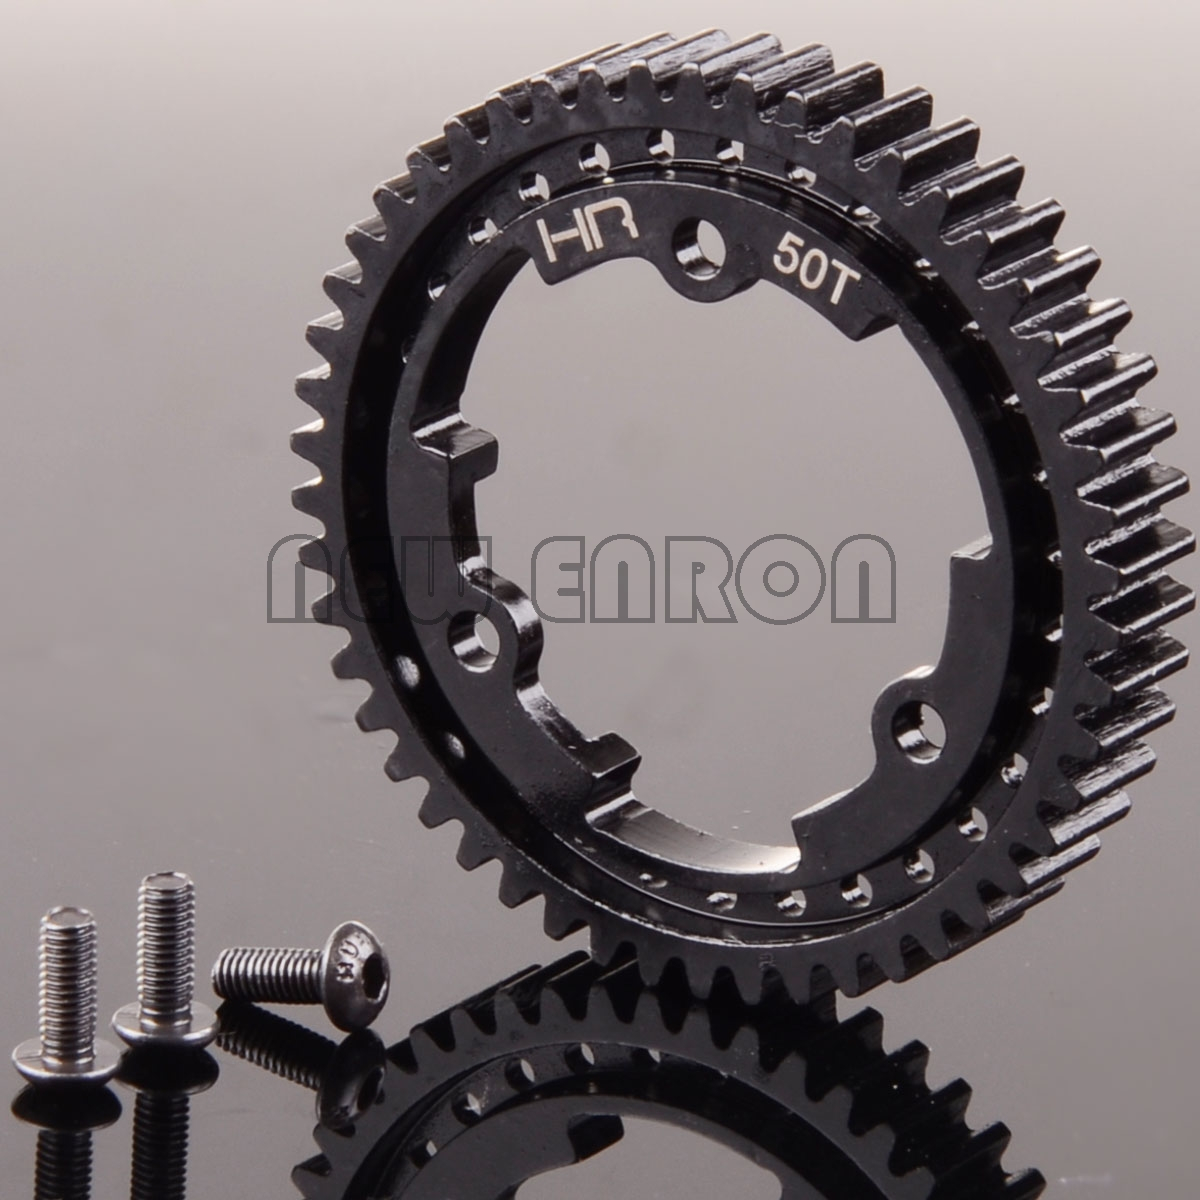 NEW ENRON 1/5 Hot Racing Steel 50T 1 Mod Hardened Steel Spur Gear TXM050T For Traxxas X Maxx XO-1